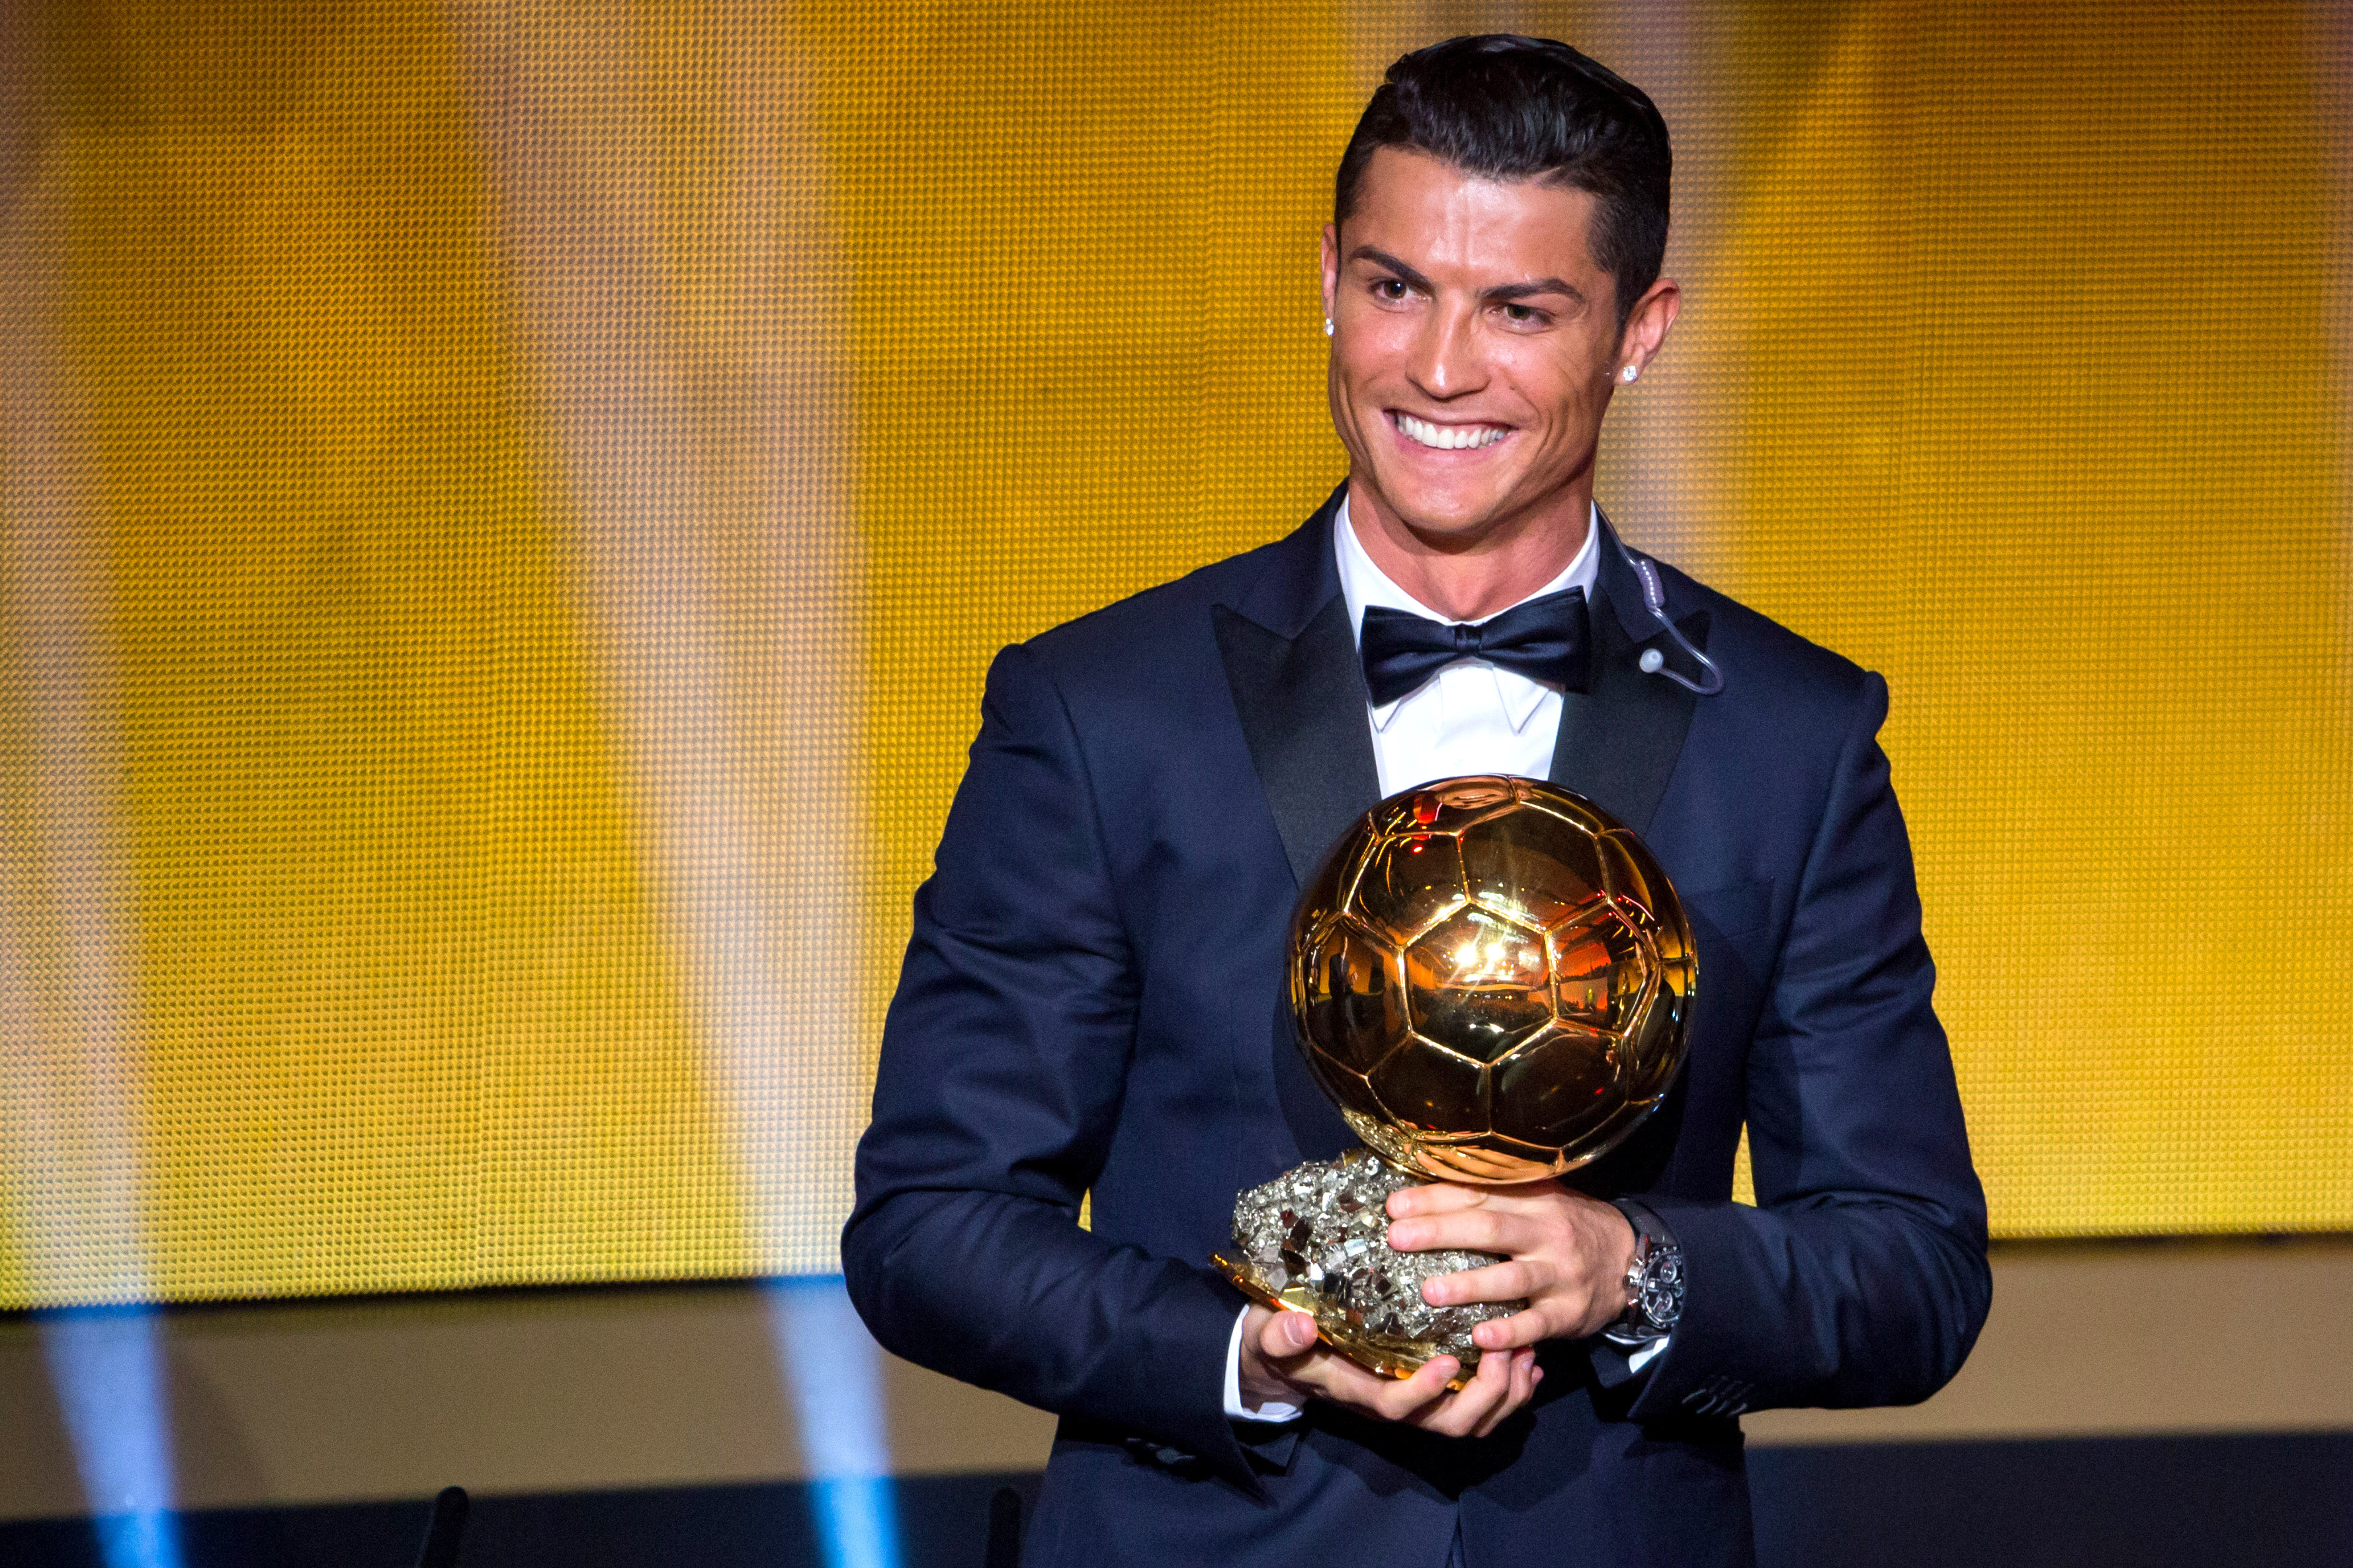 The weird and wonderful world of Ballon d'Or voting